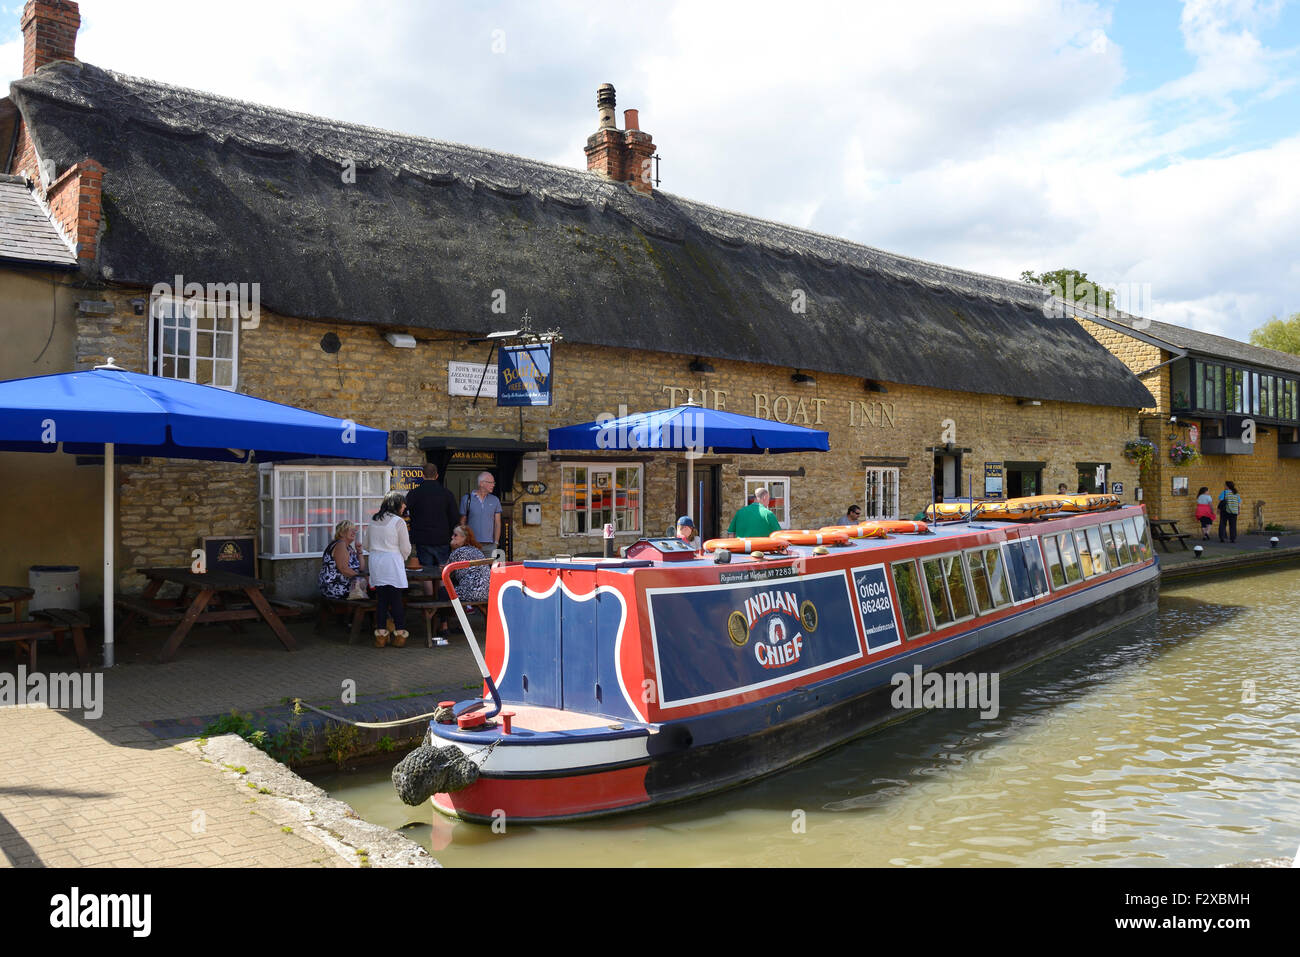 The Boat Inn on Grand Union Canal, Stoke Bruerne, Northamptonshire, England, United Kingdom - Stock Image